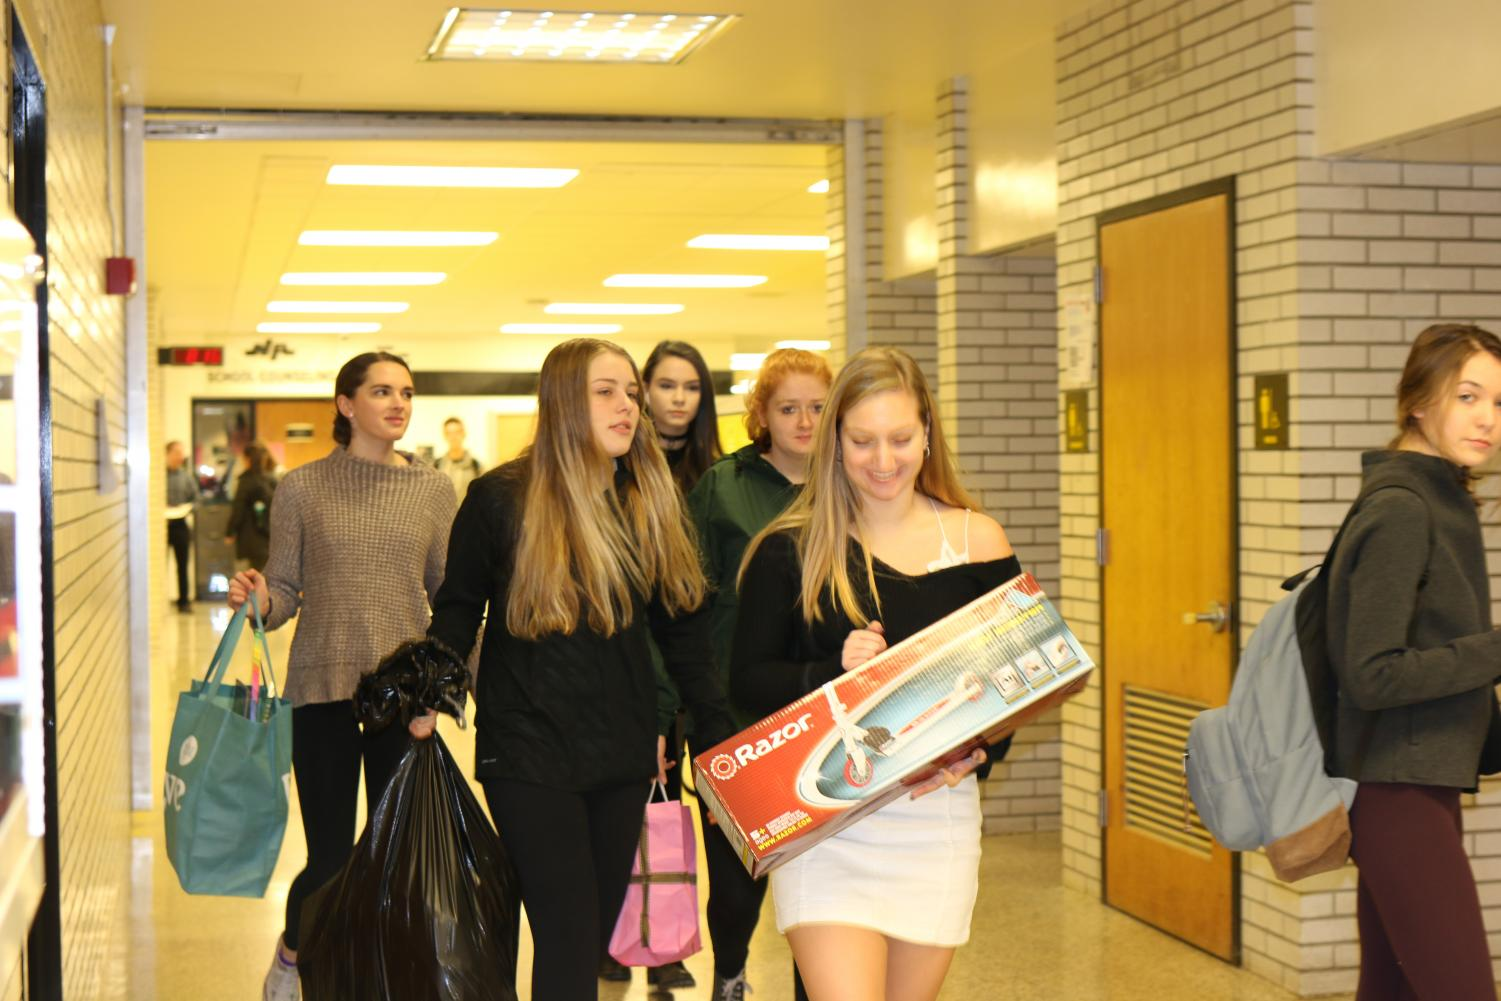 Homeroom+students+flocked+to+the+NASH+lobby+to+deliver+their+presents.